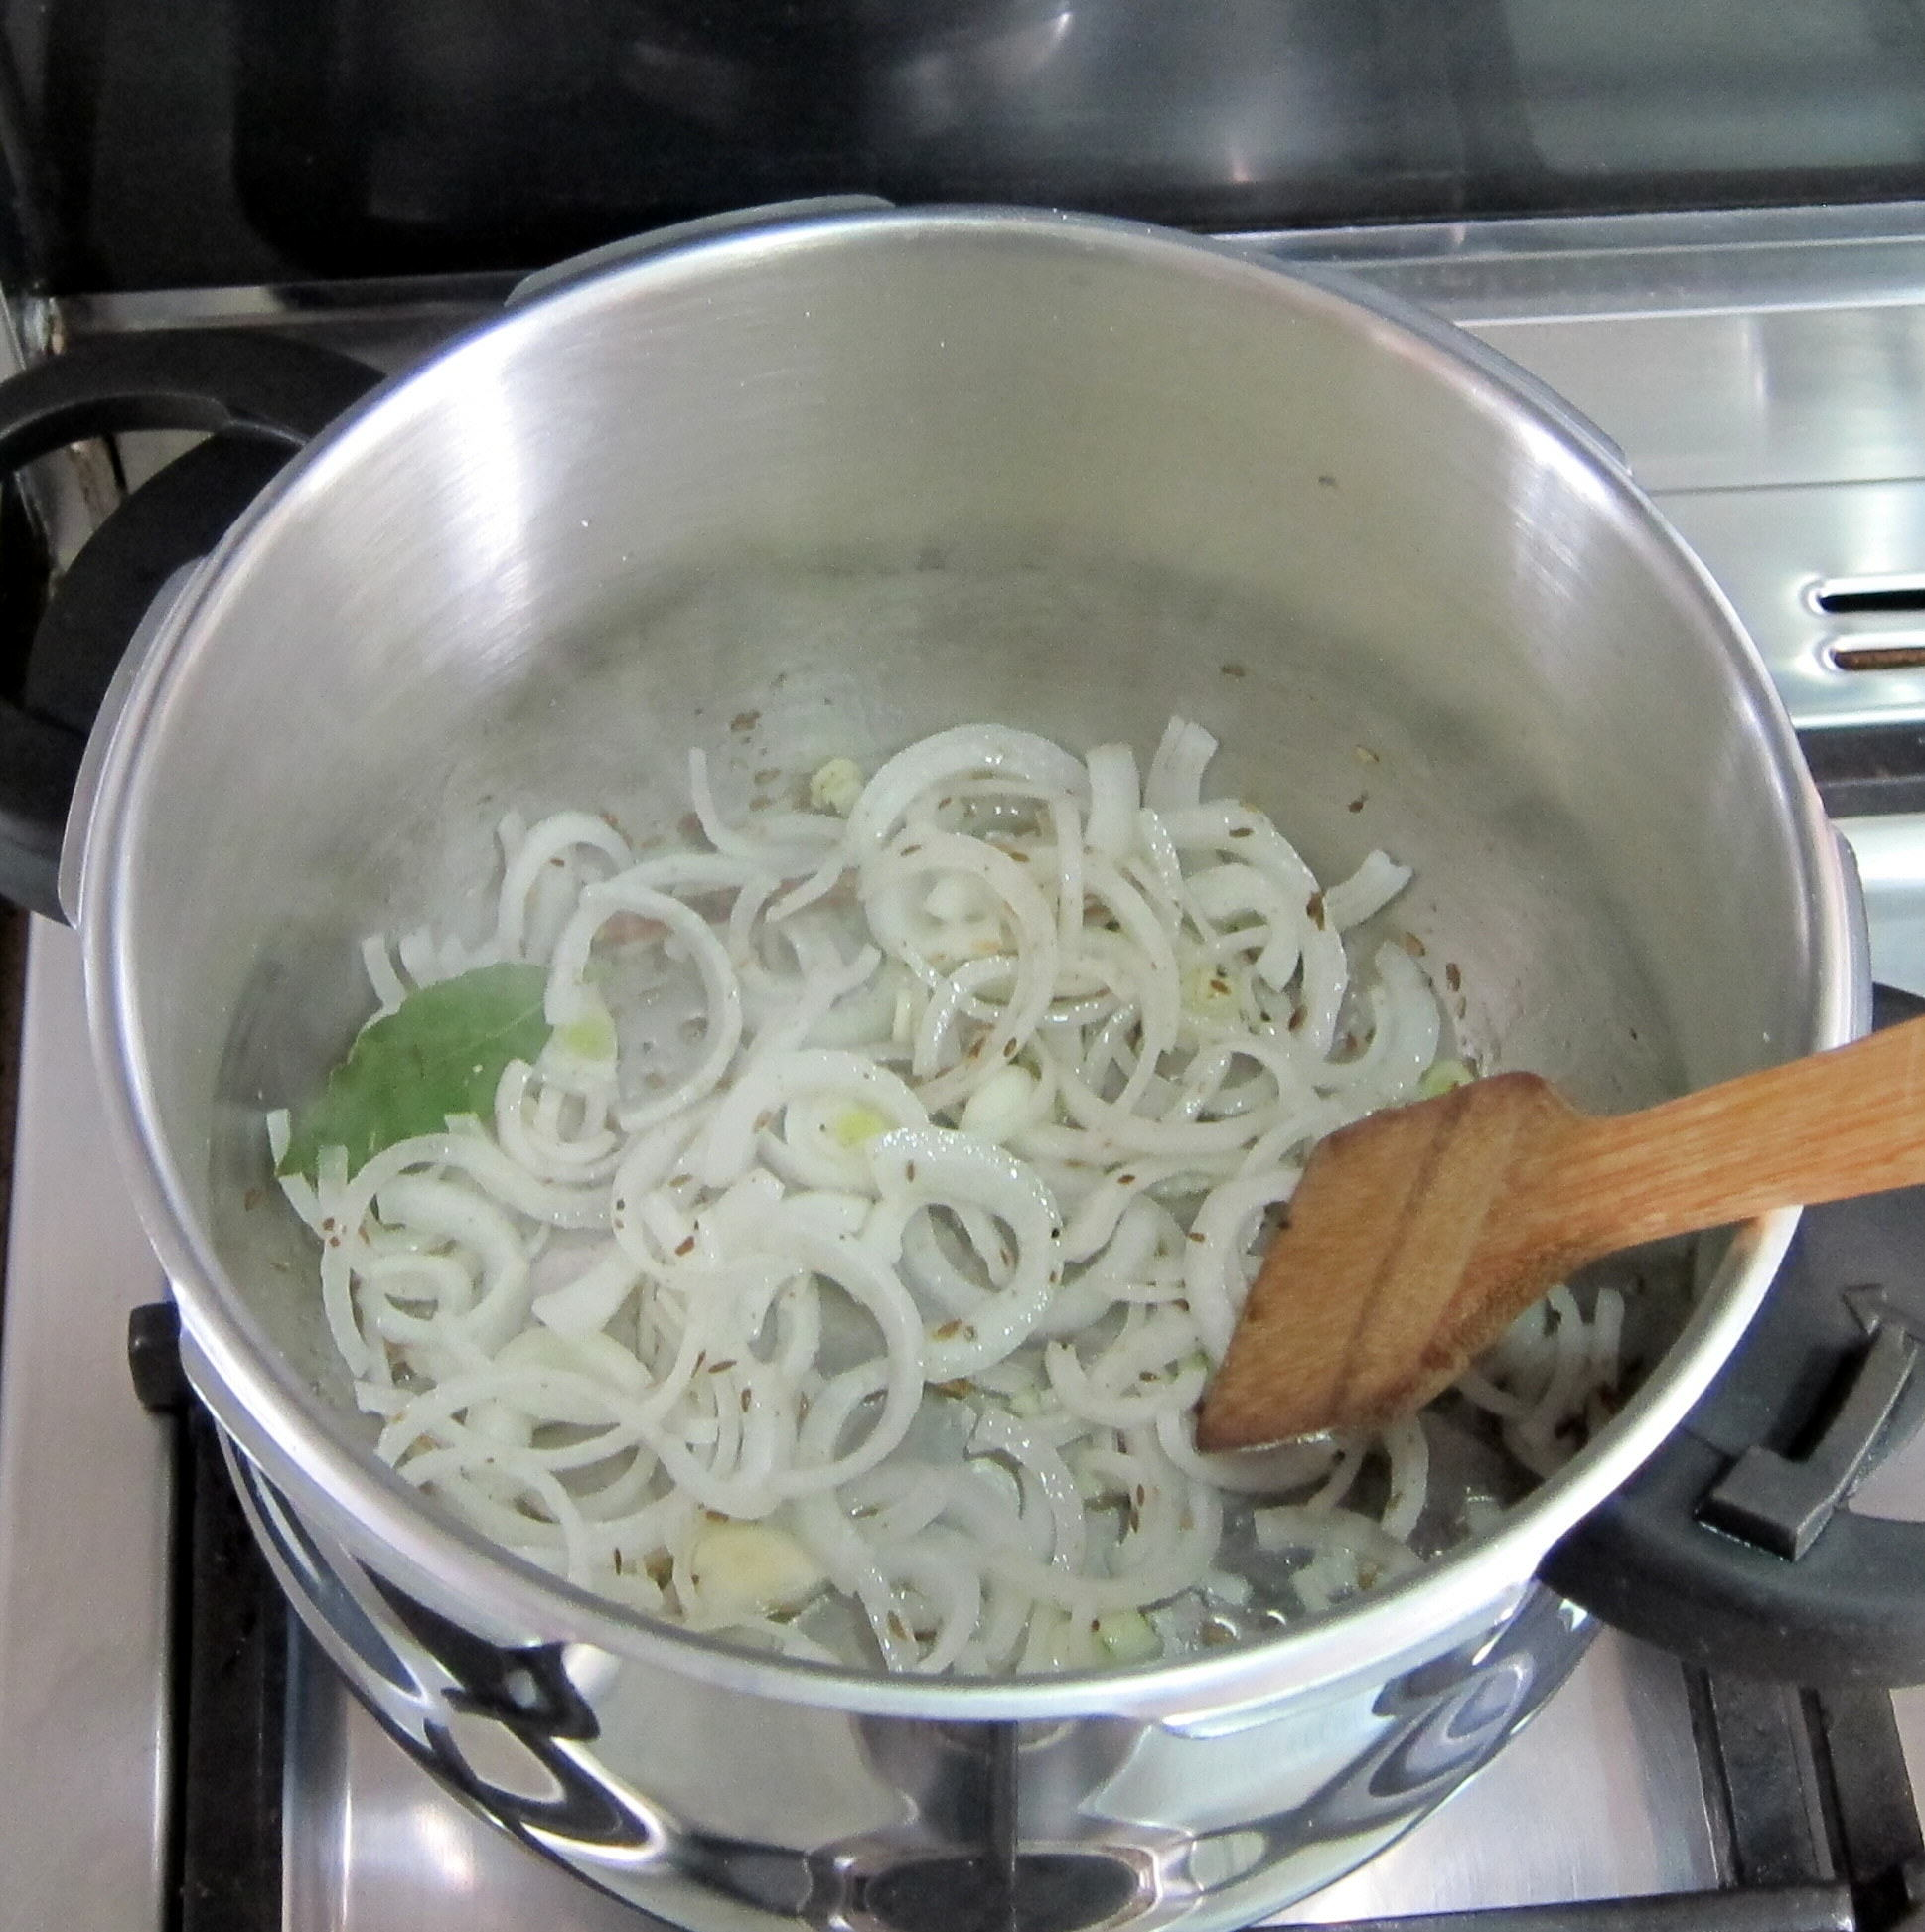 Add onions and saute until just starting to brown.